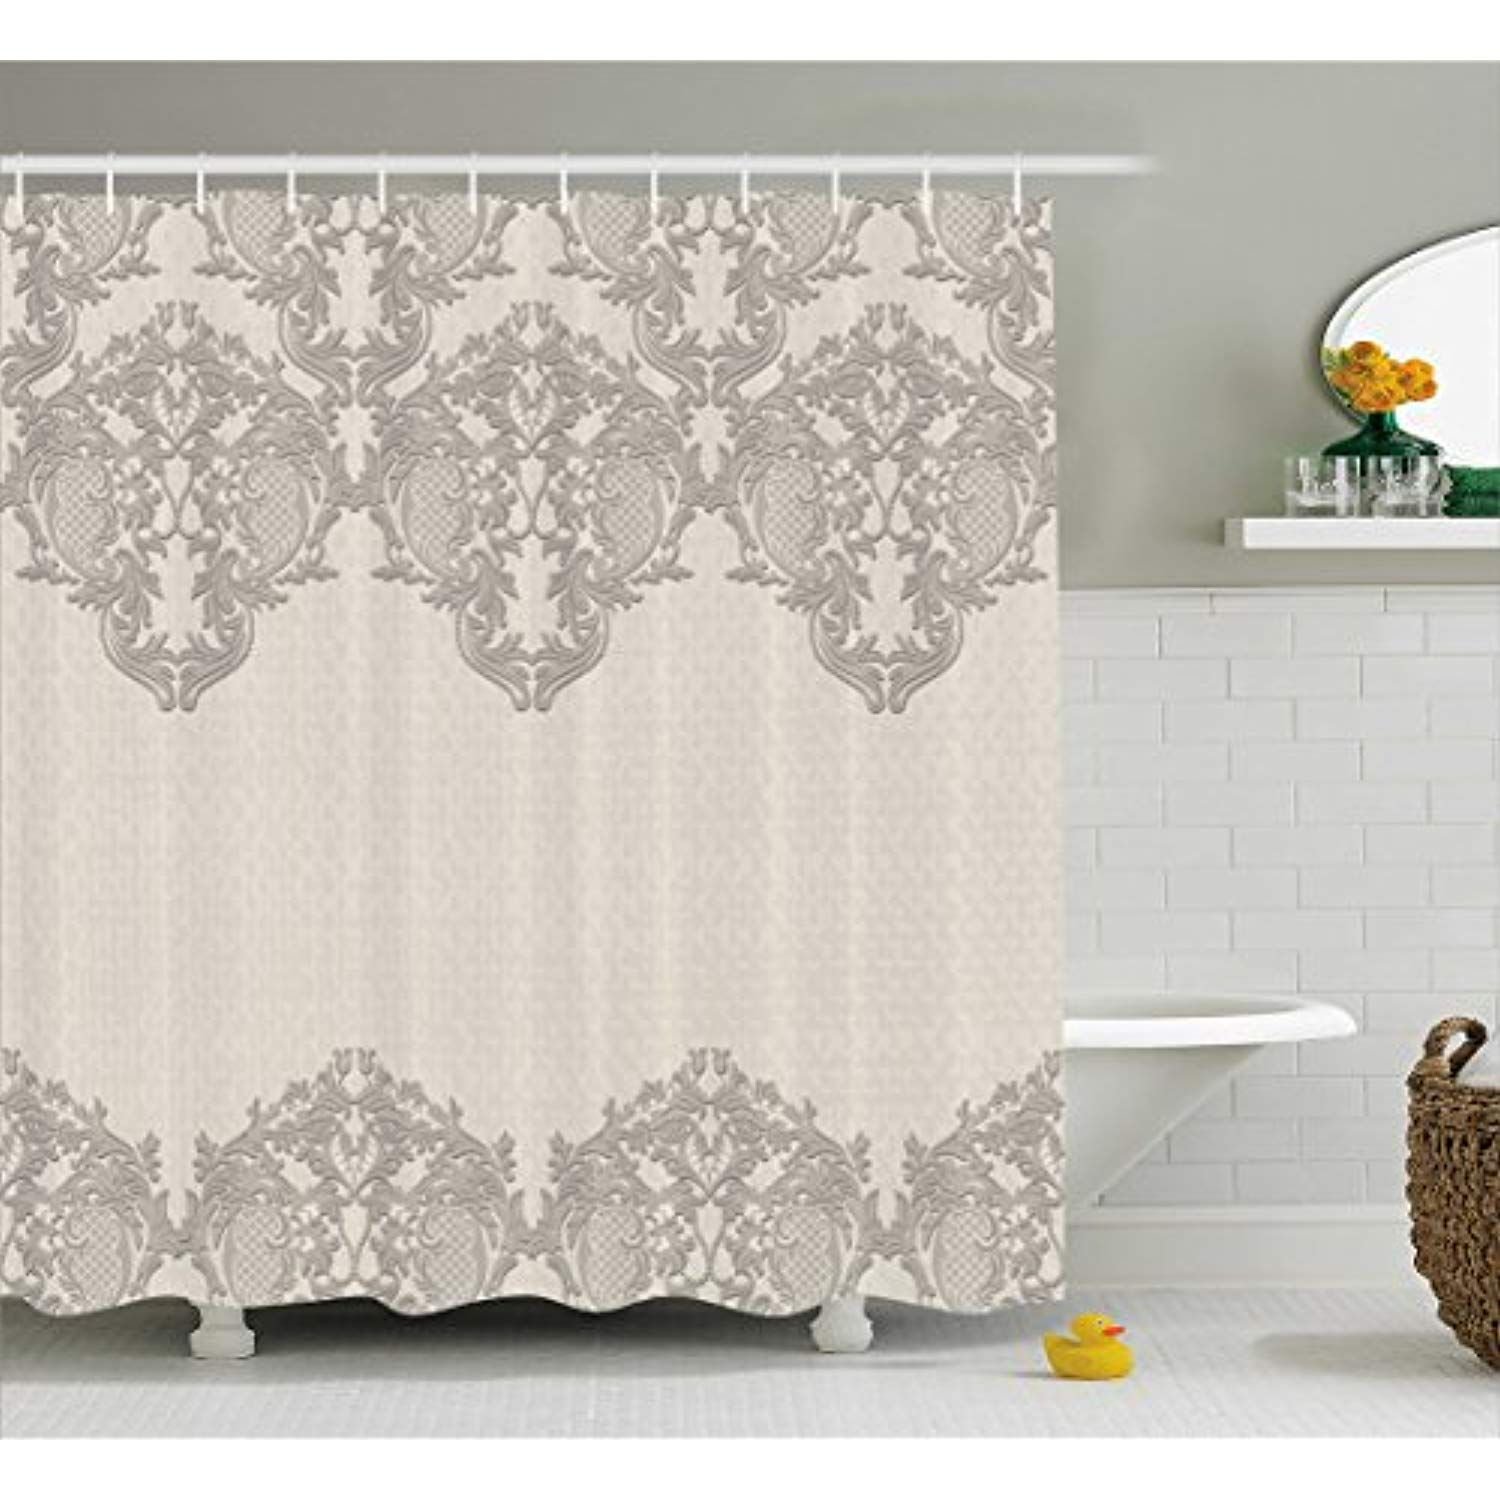 Curtain Lace Like Framework Borders With Arabesque Details Delicate Intricate Retro Dated Print Fabric Bathroom Decor Set Hooks 75 Inches Long